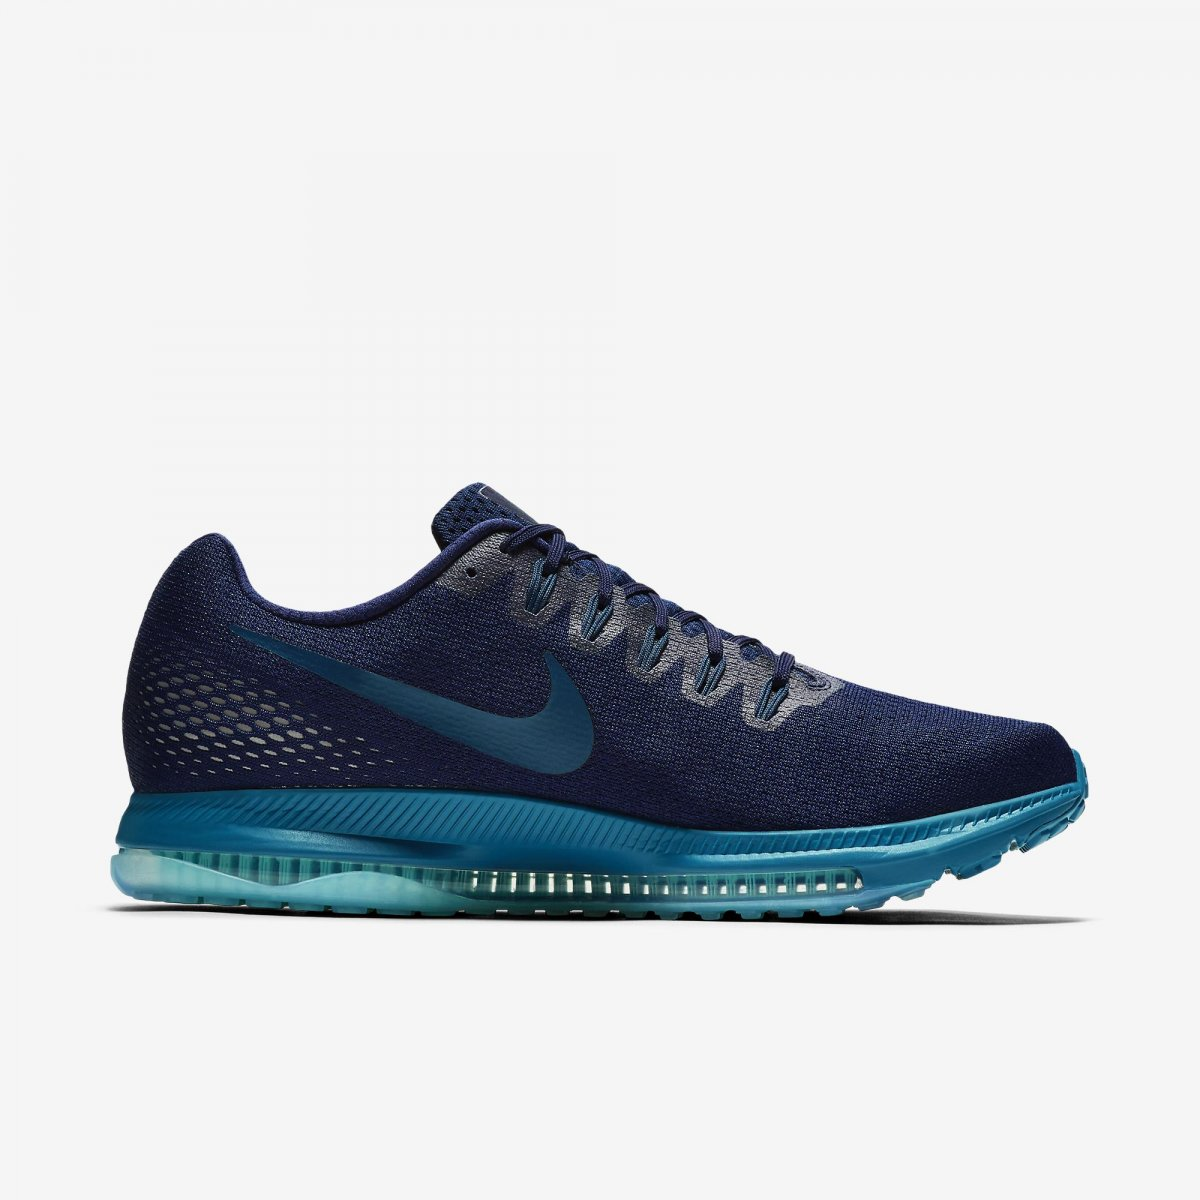 Tênis Masculino Nike Zoom All Out Low 878670-404 - Azul - Calçados ... a281b82ab4